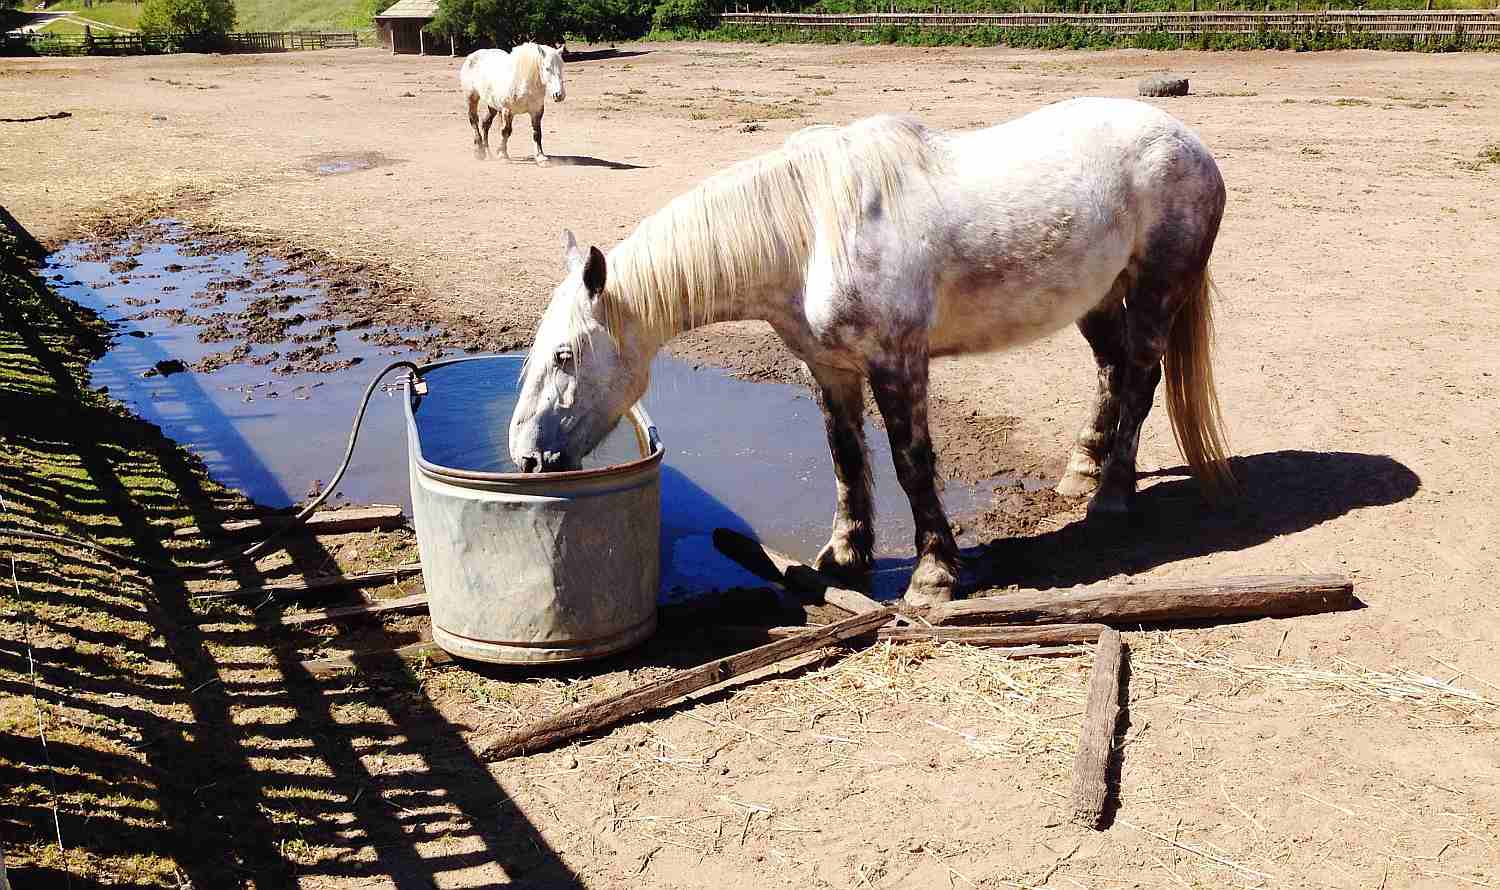 Draft horse drinking from trough in sandy and muddy paddock.